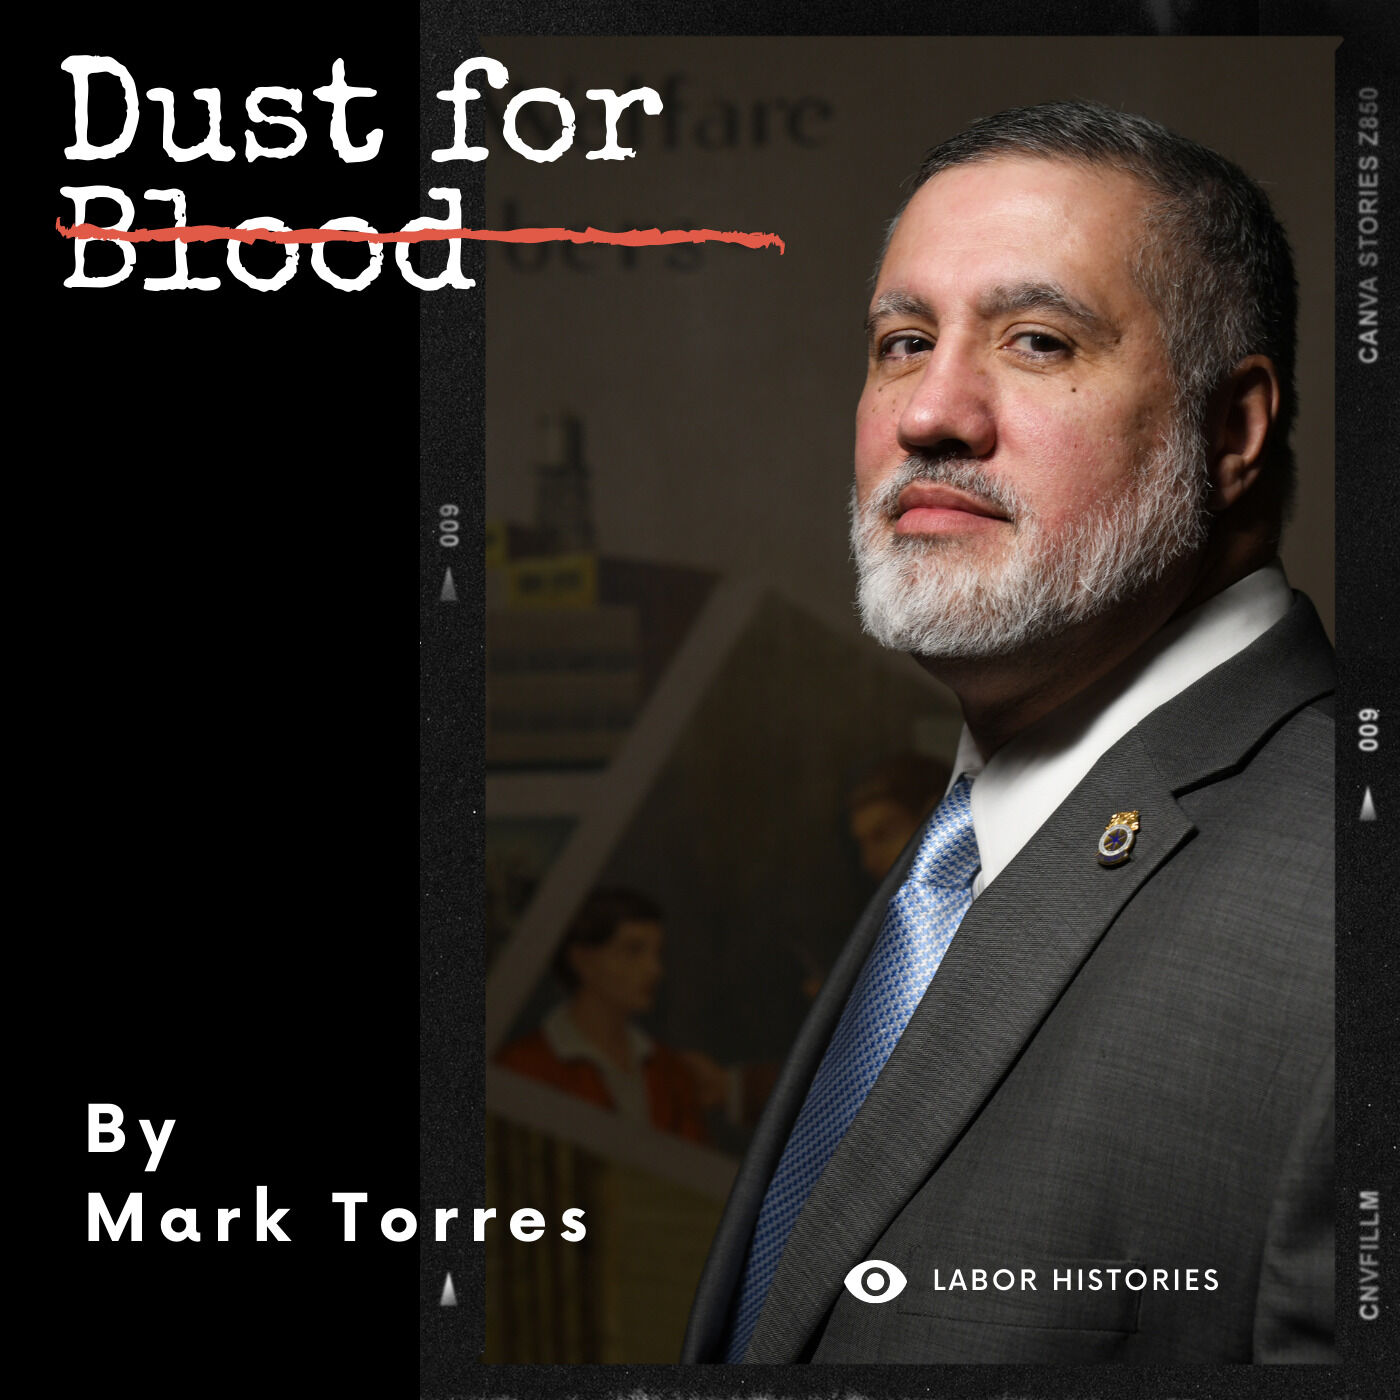 Dust for Blood